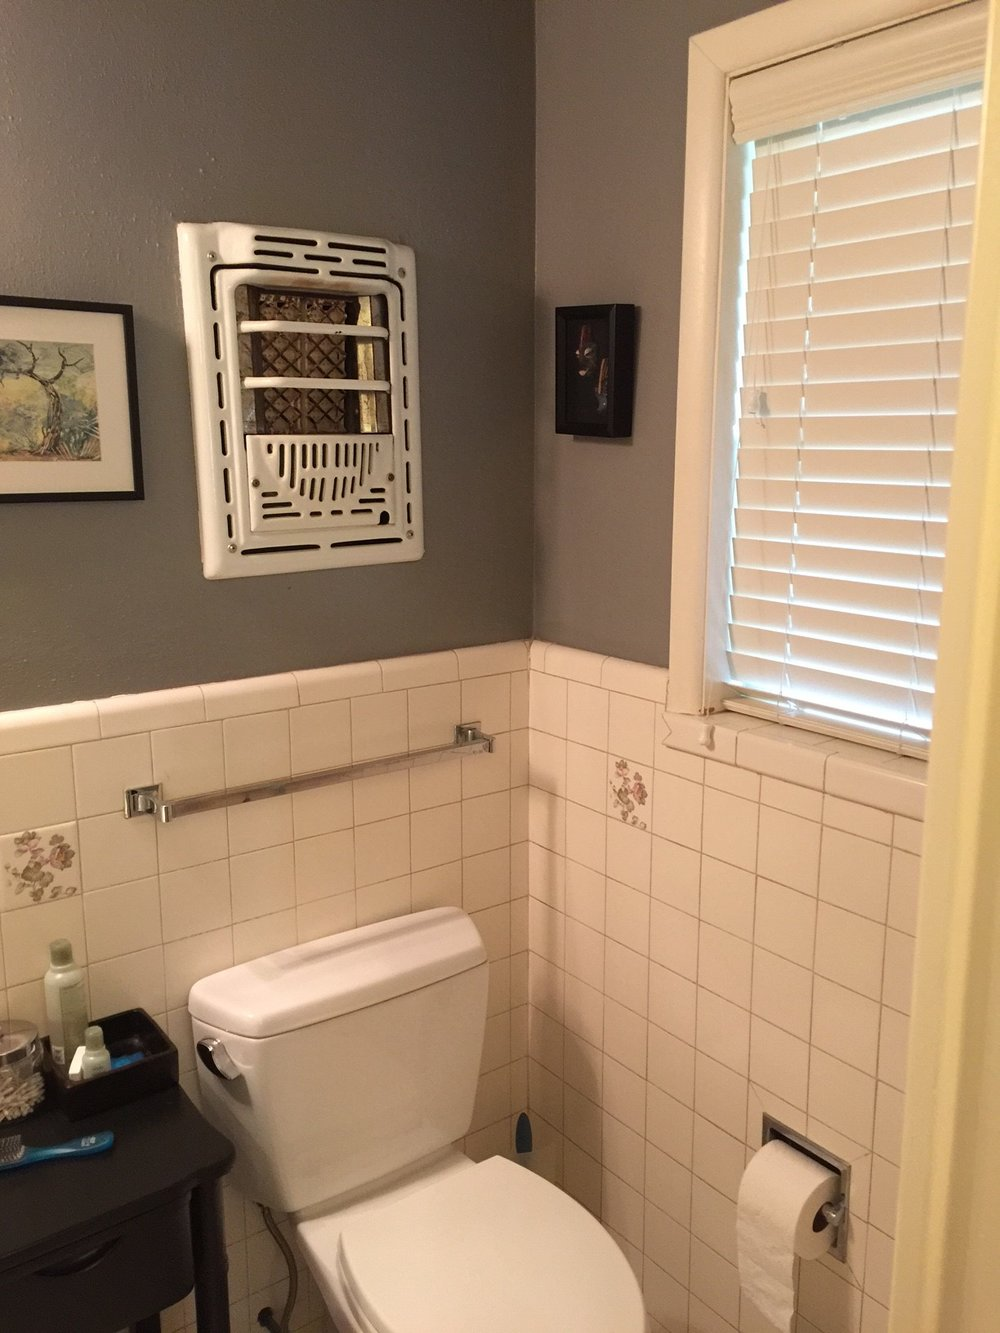 BEFORE Bathroom remodel